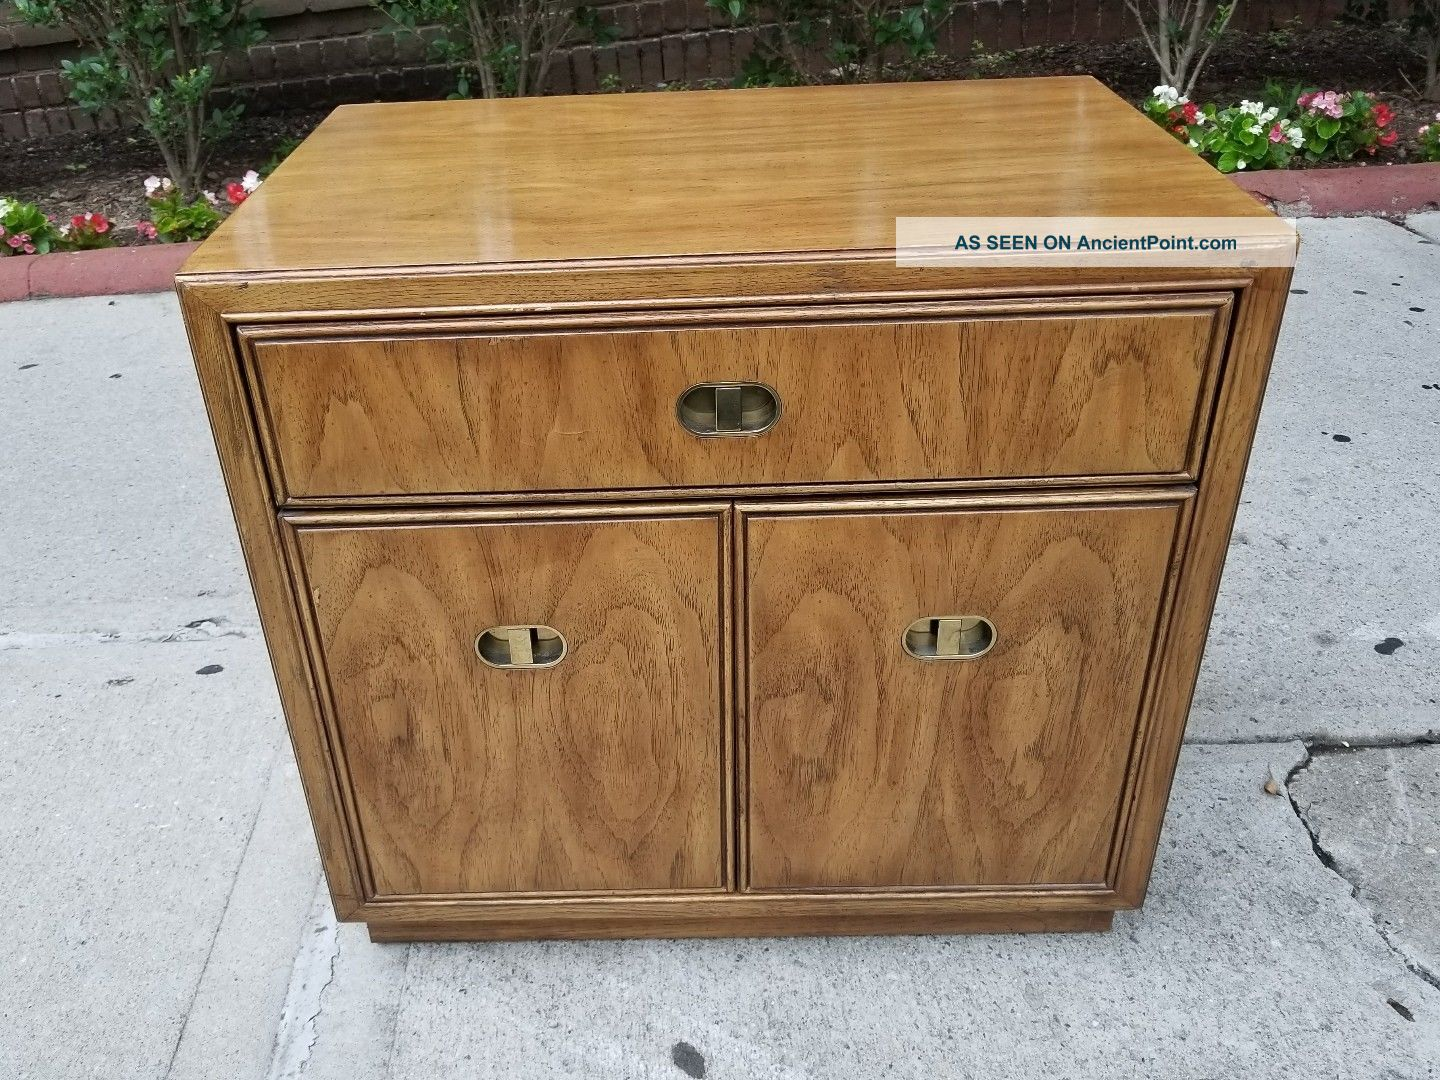 Vtg Drexel Heritage Passage Mid Century Campaign Modern Nightstand/end Table Mid-Century Modernism photo